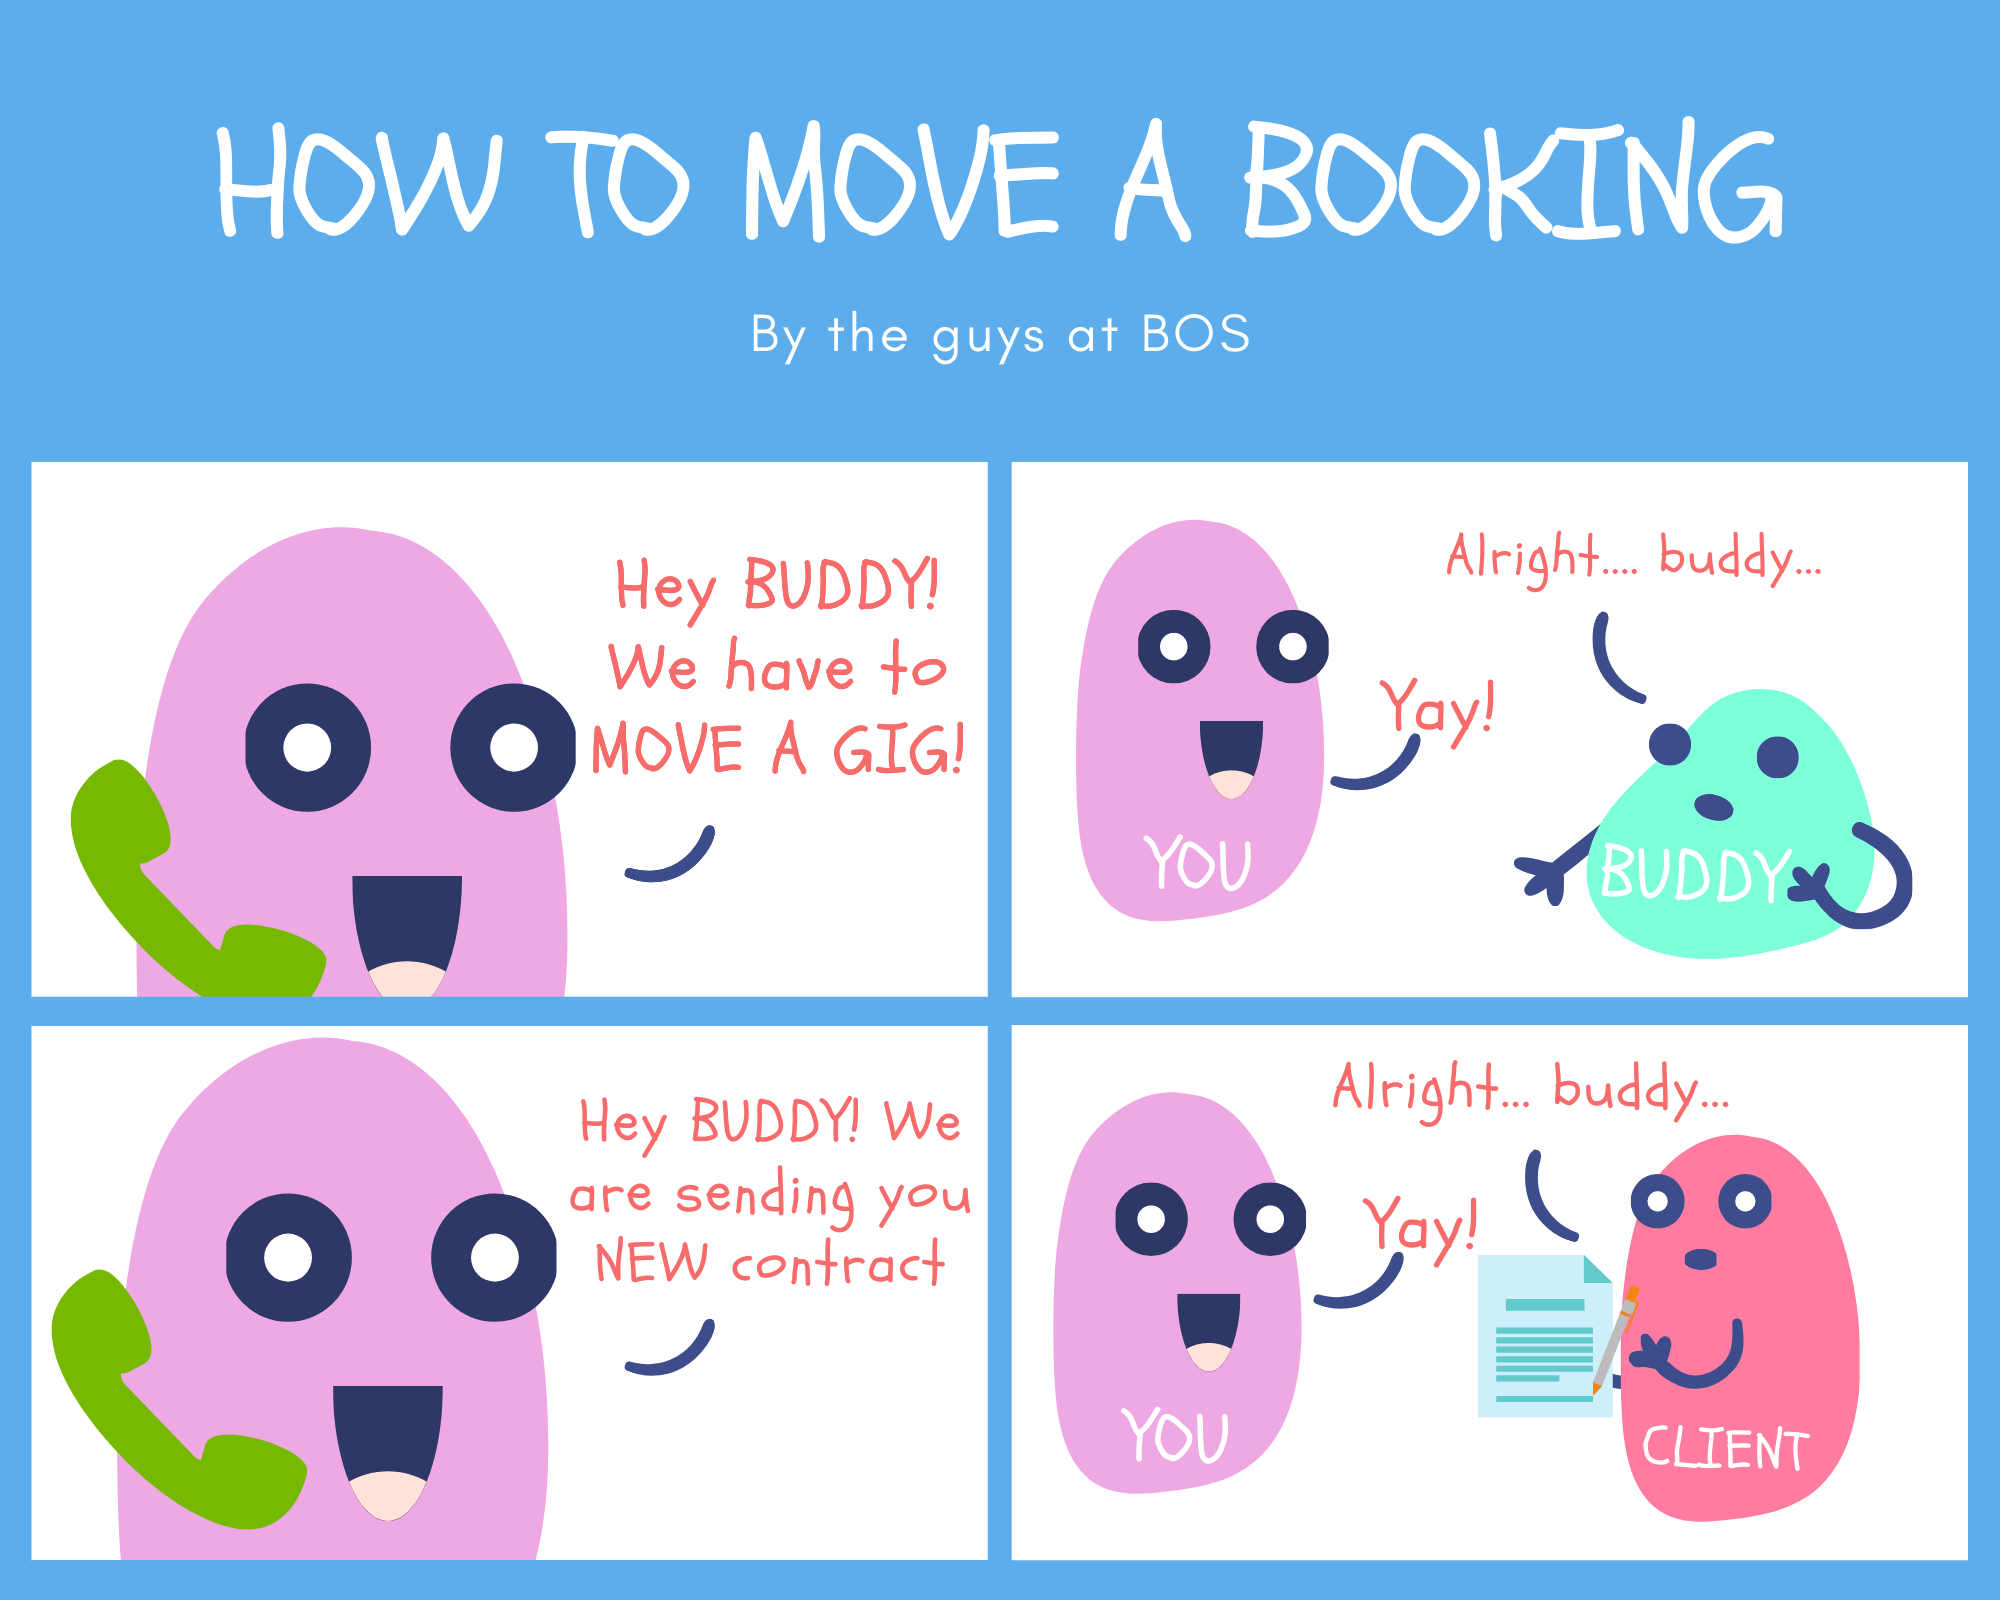 How to move a booking